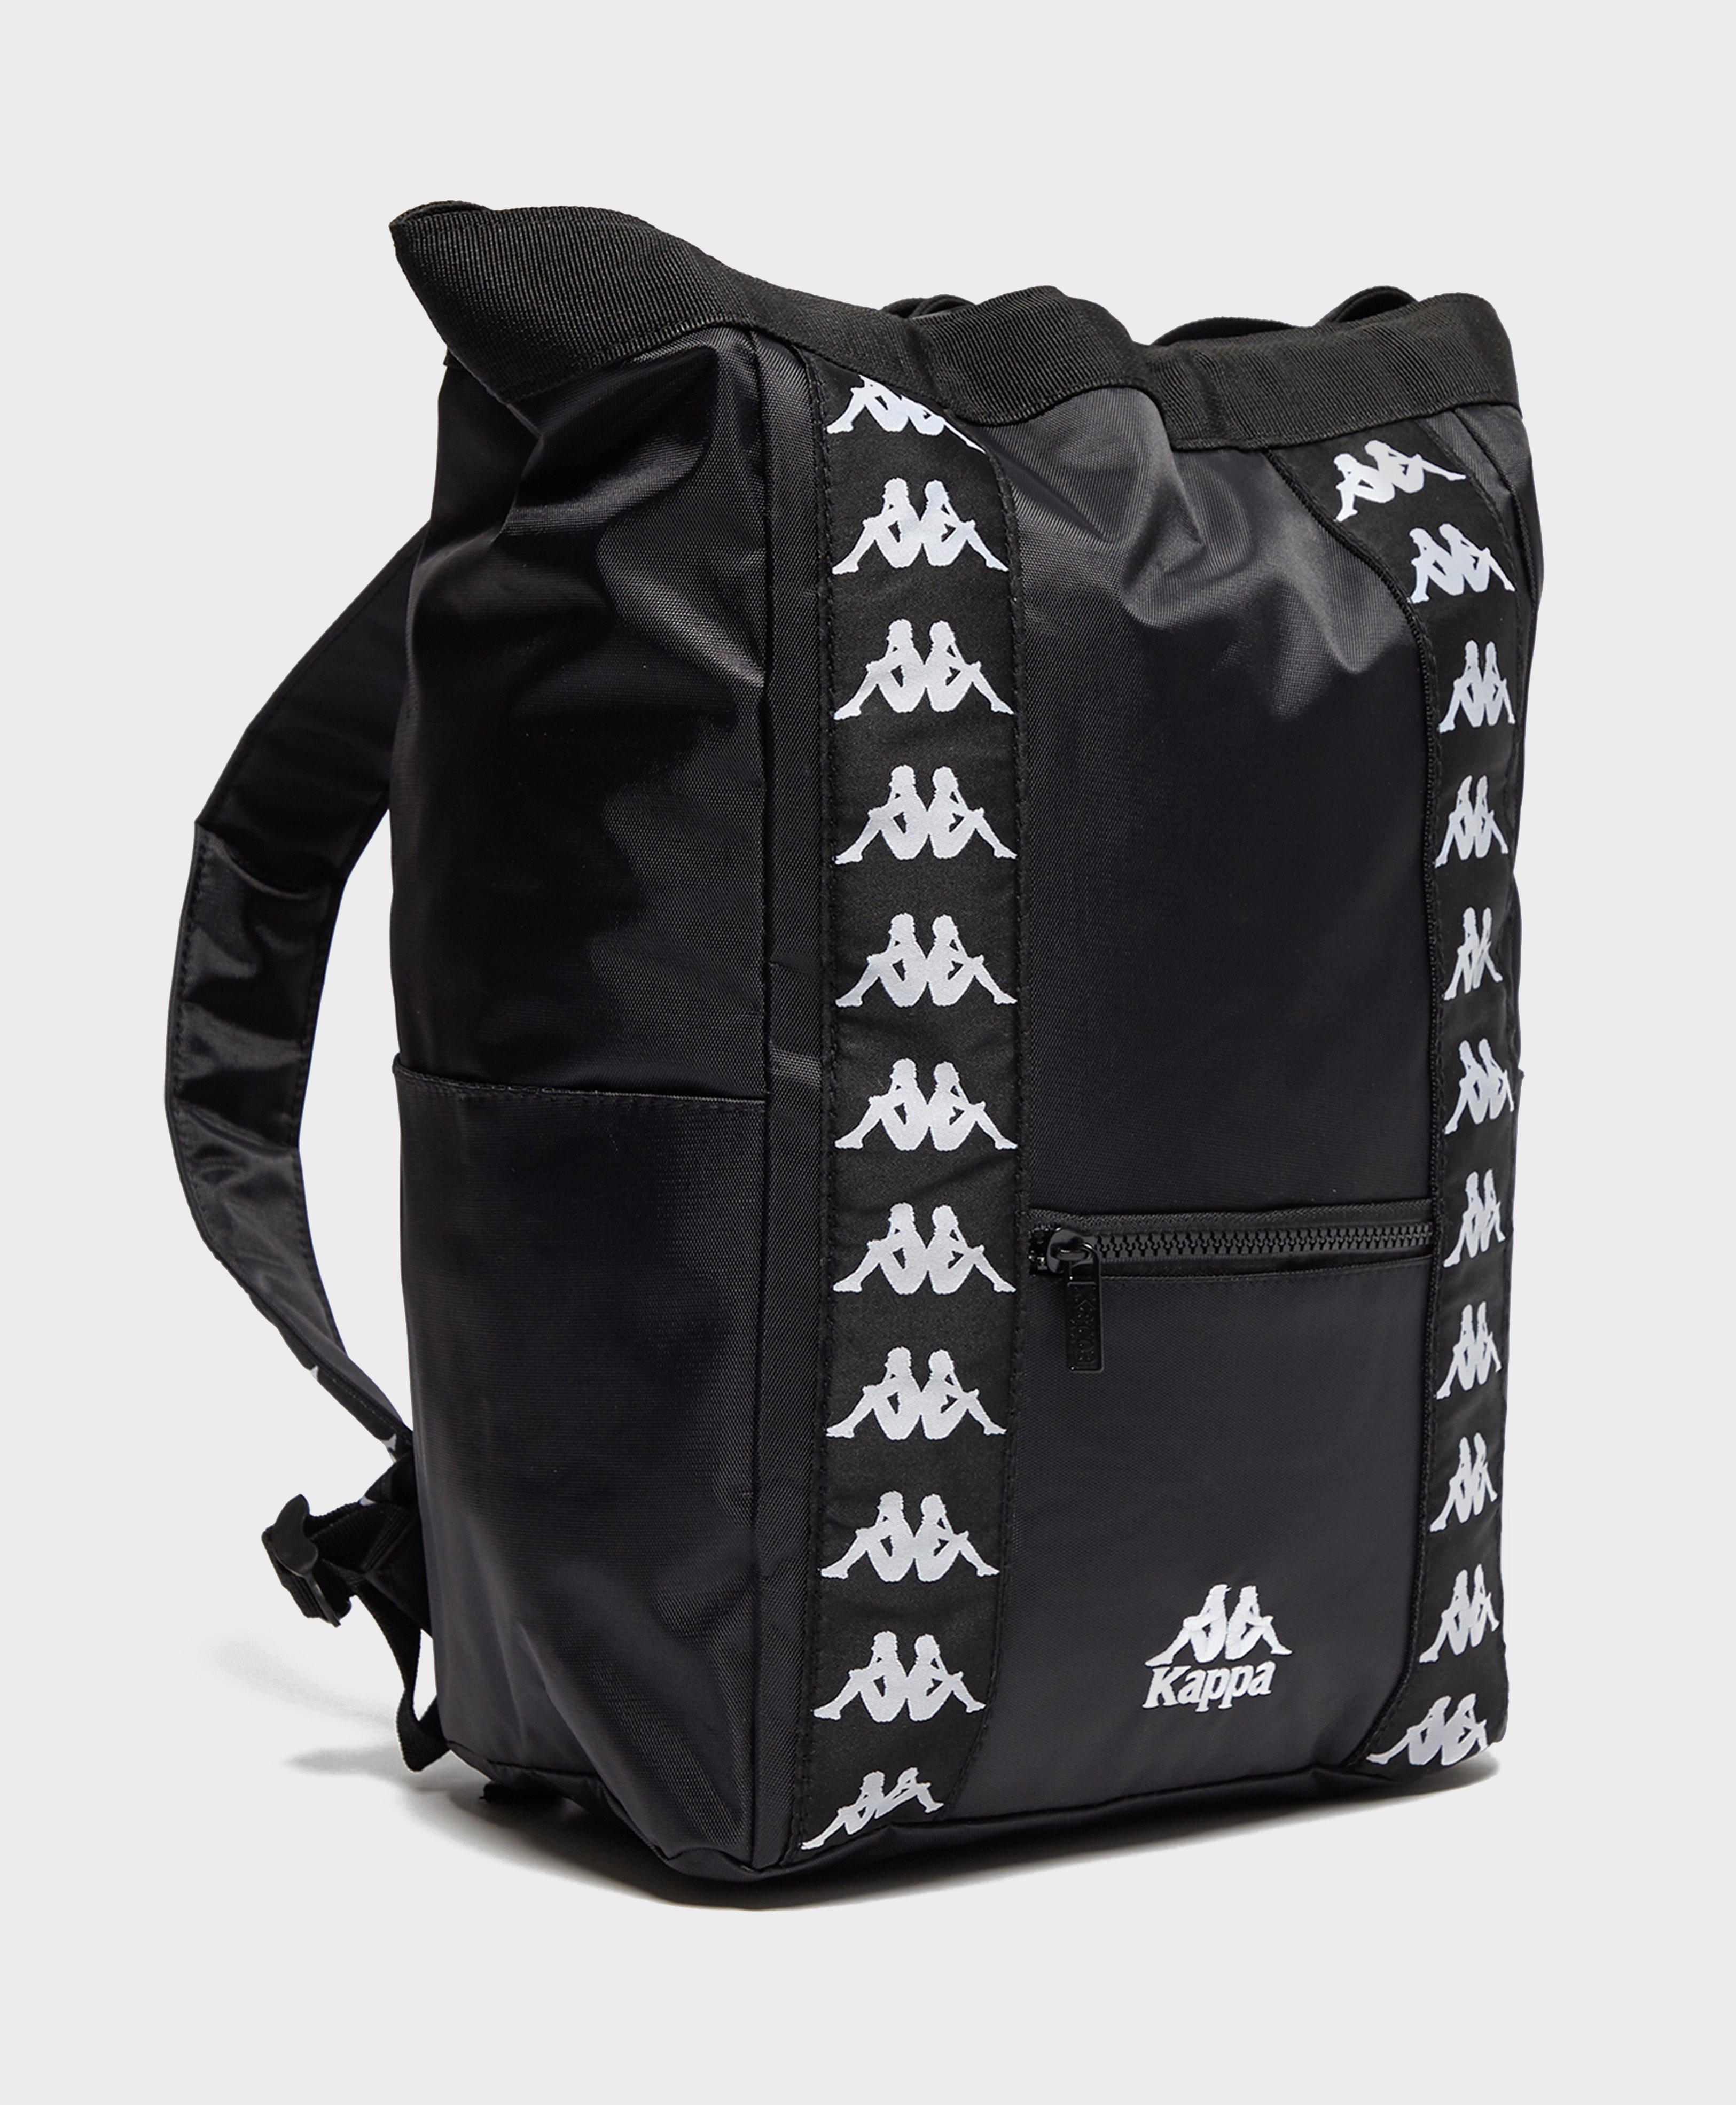 magnete codice Cooperativa  Kappa Anin Tape Tote Backpack in Black for Men - Lyst